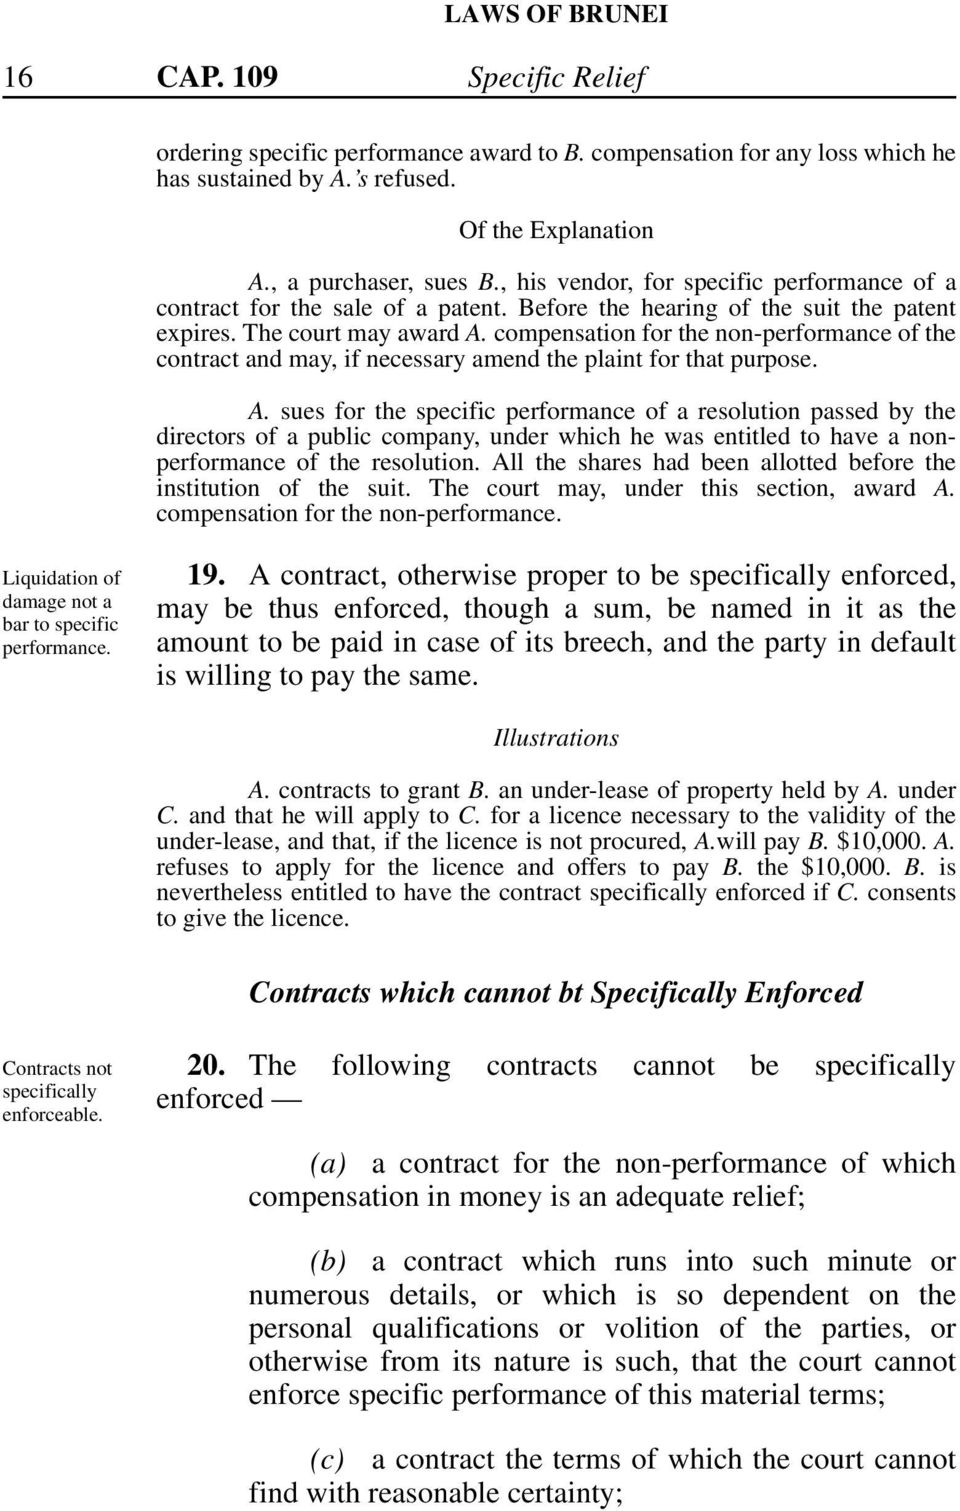 draft plaint for specific performance of contract